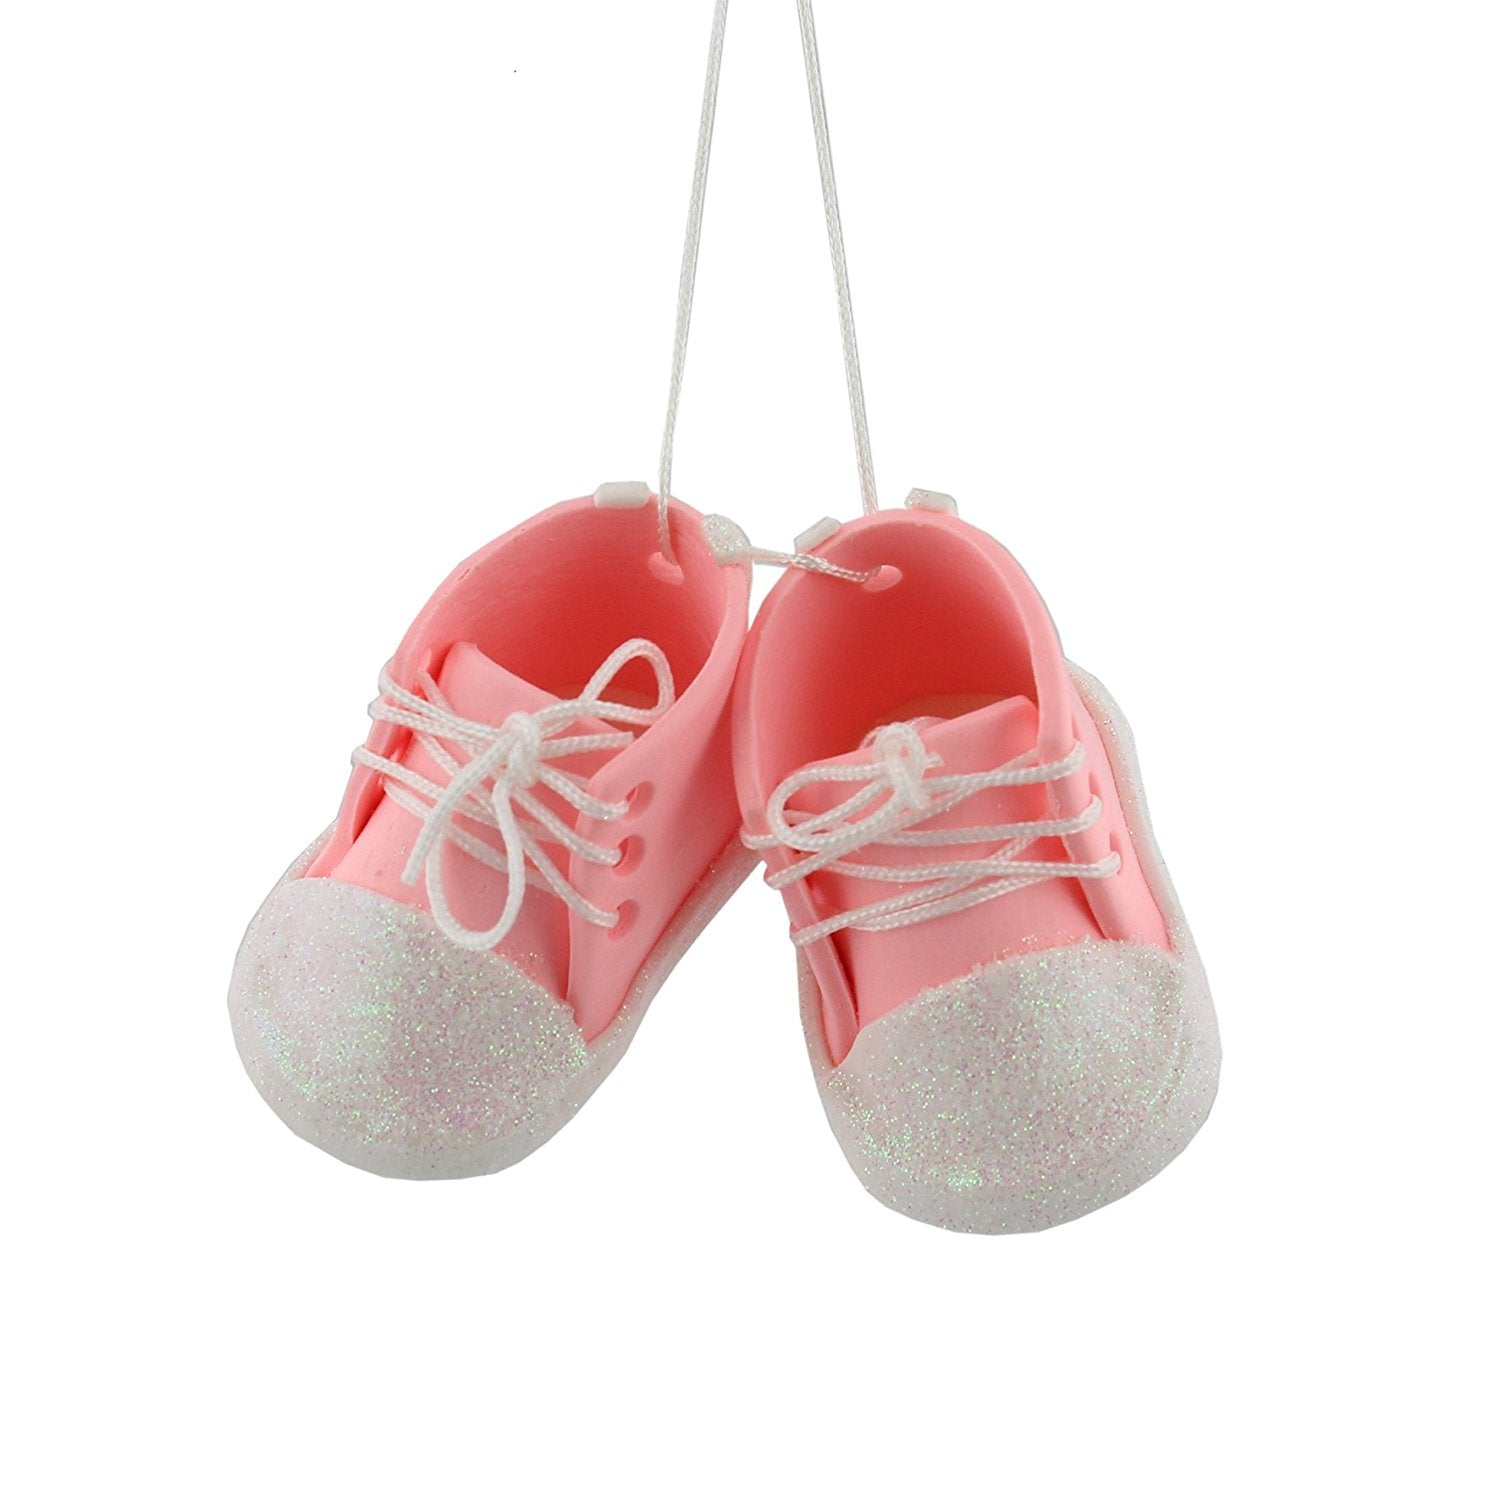 Baby Girl Shoes Hanging Ornament … – Laura s Little Boutique UK